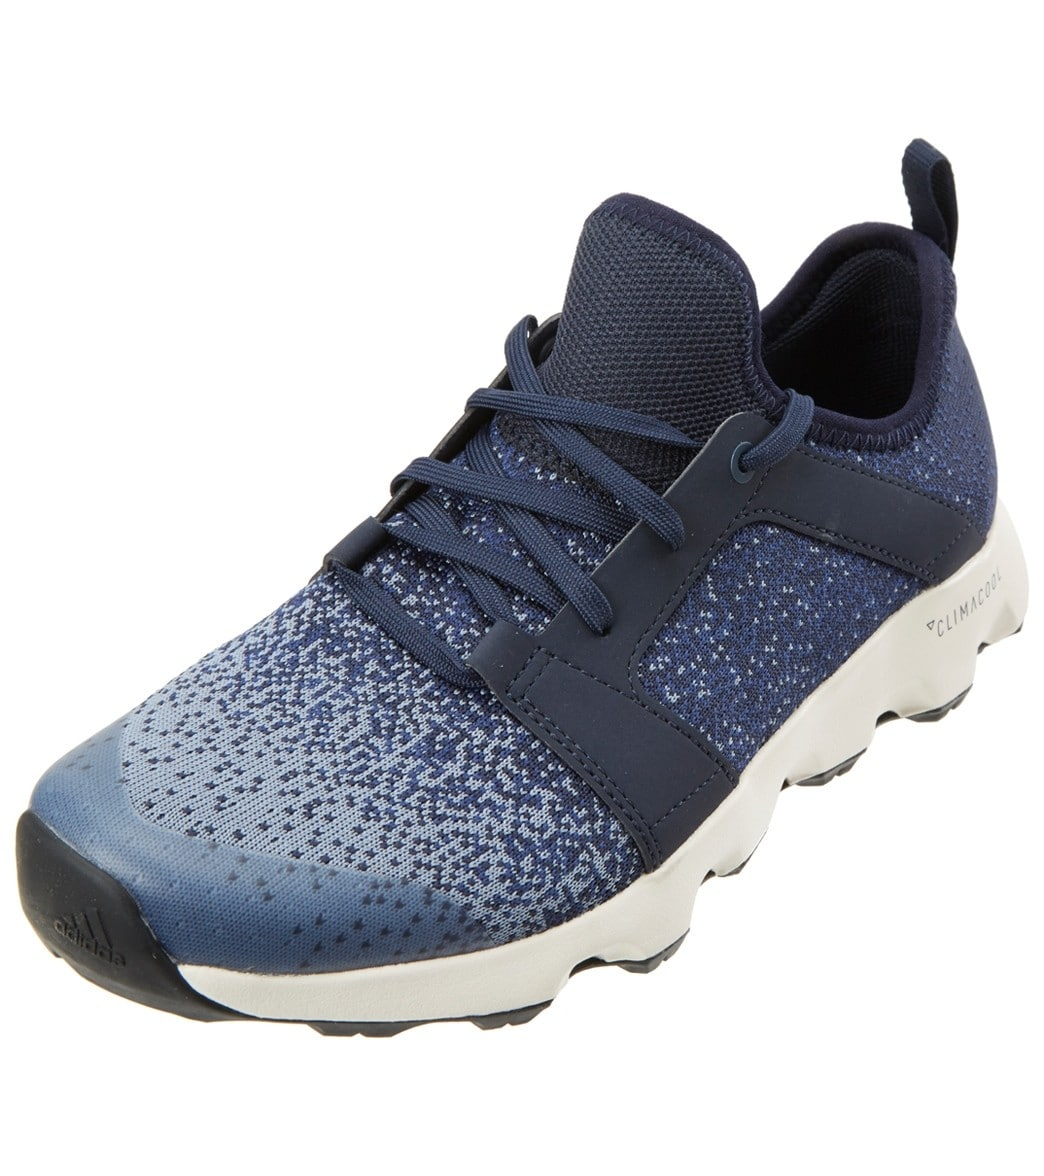 quality design ff009 335f5 Adidas Women s Terrex Climacool Voyager Sleek Parley Water Shoe at  SwimOutlet.com - Free Shipping